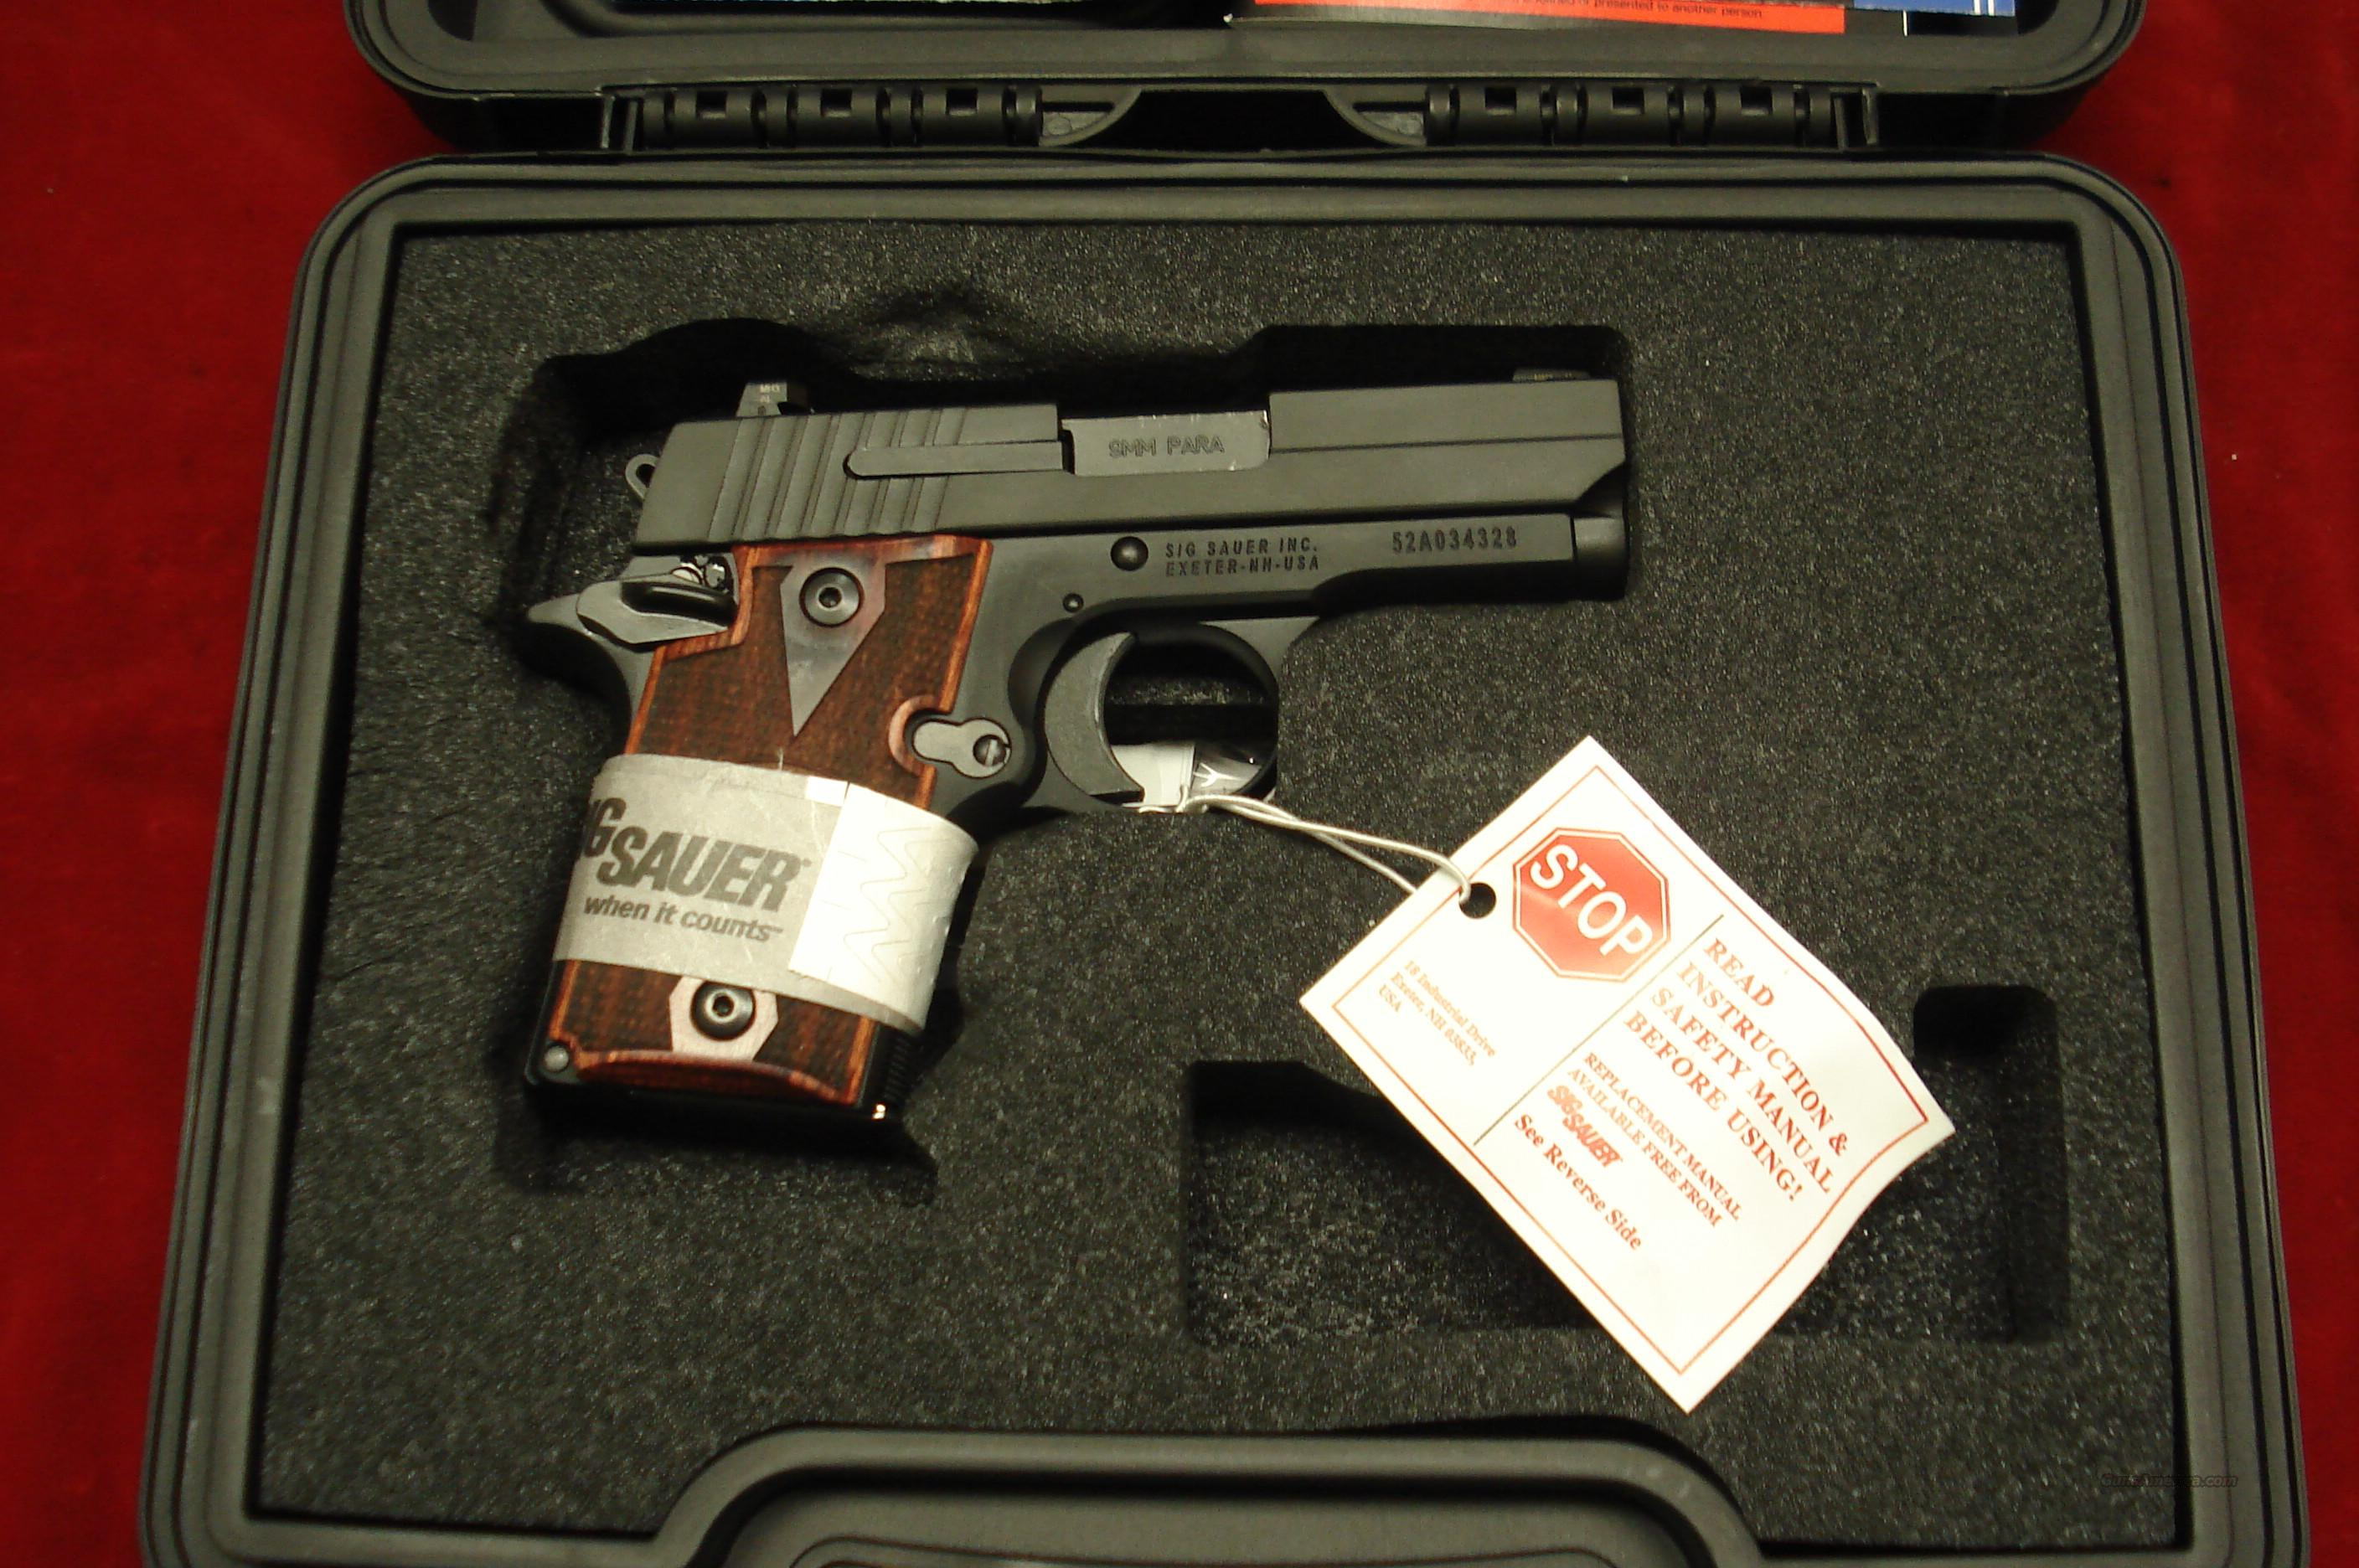 SIG SAUER 938  9MM W/NIGHT SIGHTS NEW  (938-9-RG-AMBI)   Guns > Pistols > Sig - Sauer/Sigarms Pistols > Other